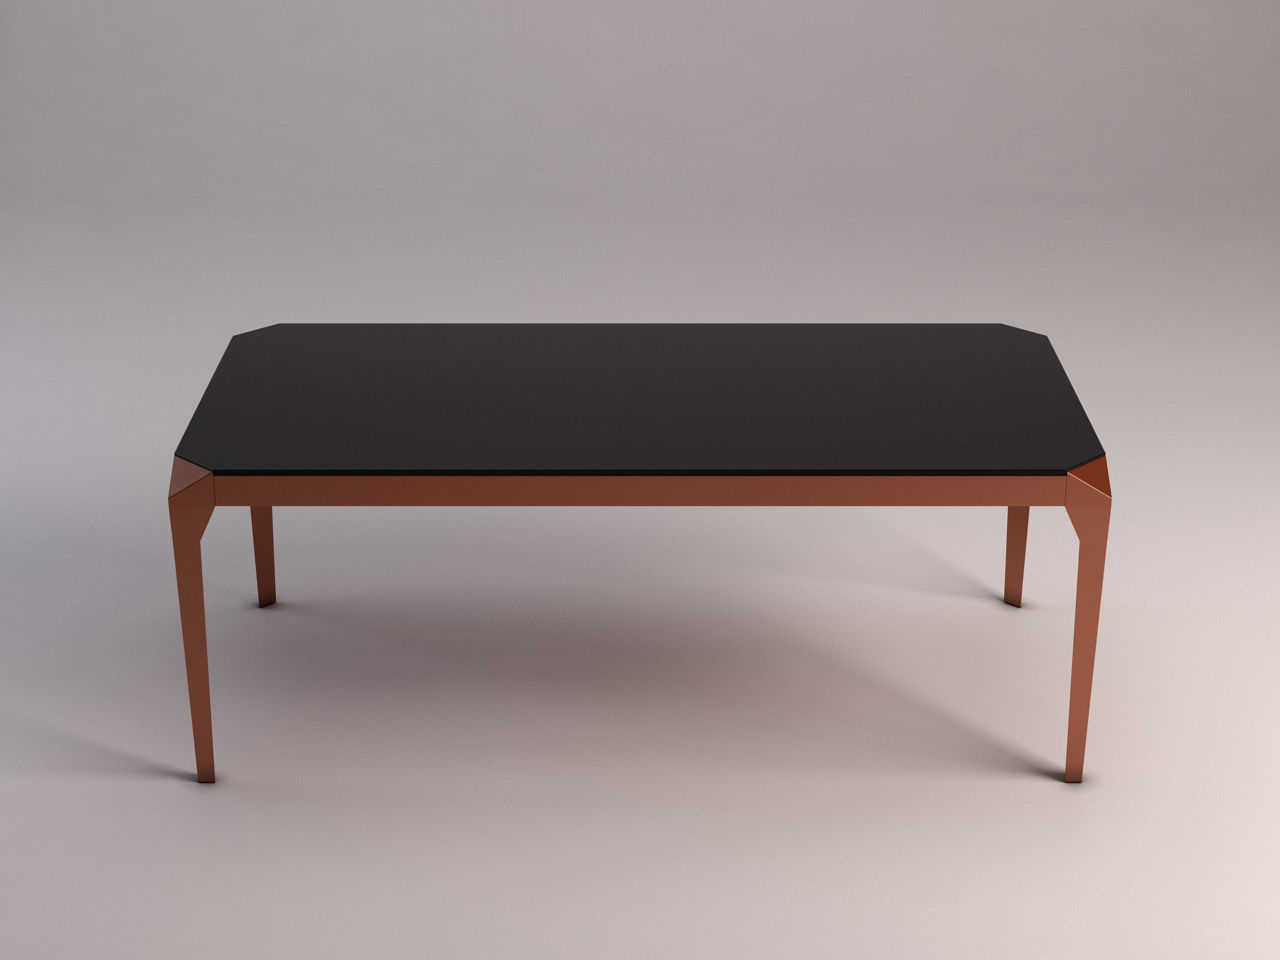 3d Model Dining Table Copper And Smoked Glass Cgtrader